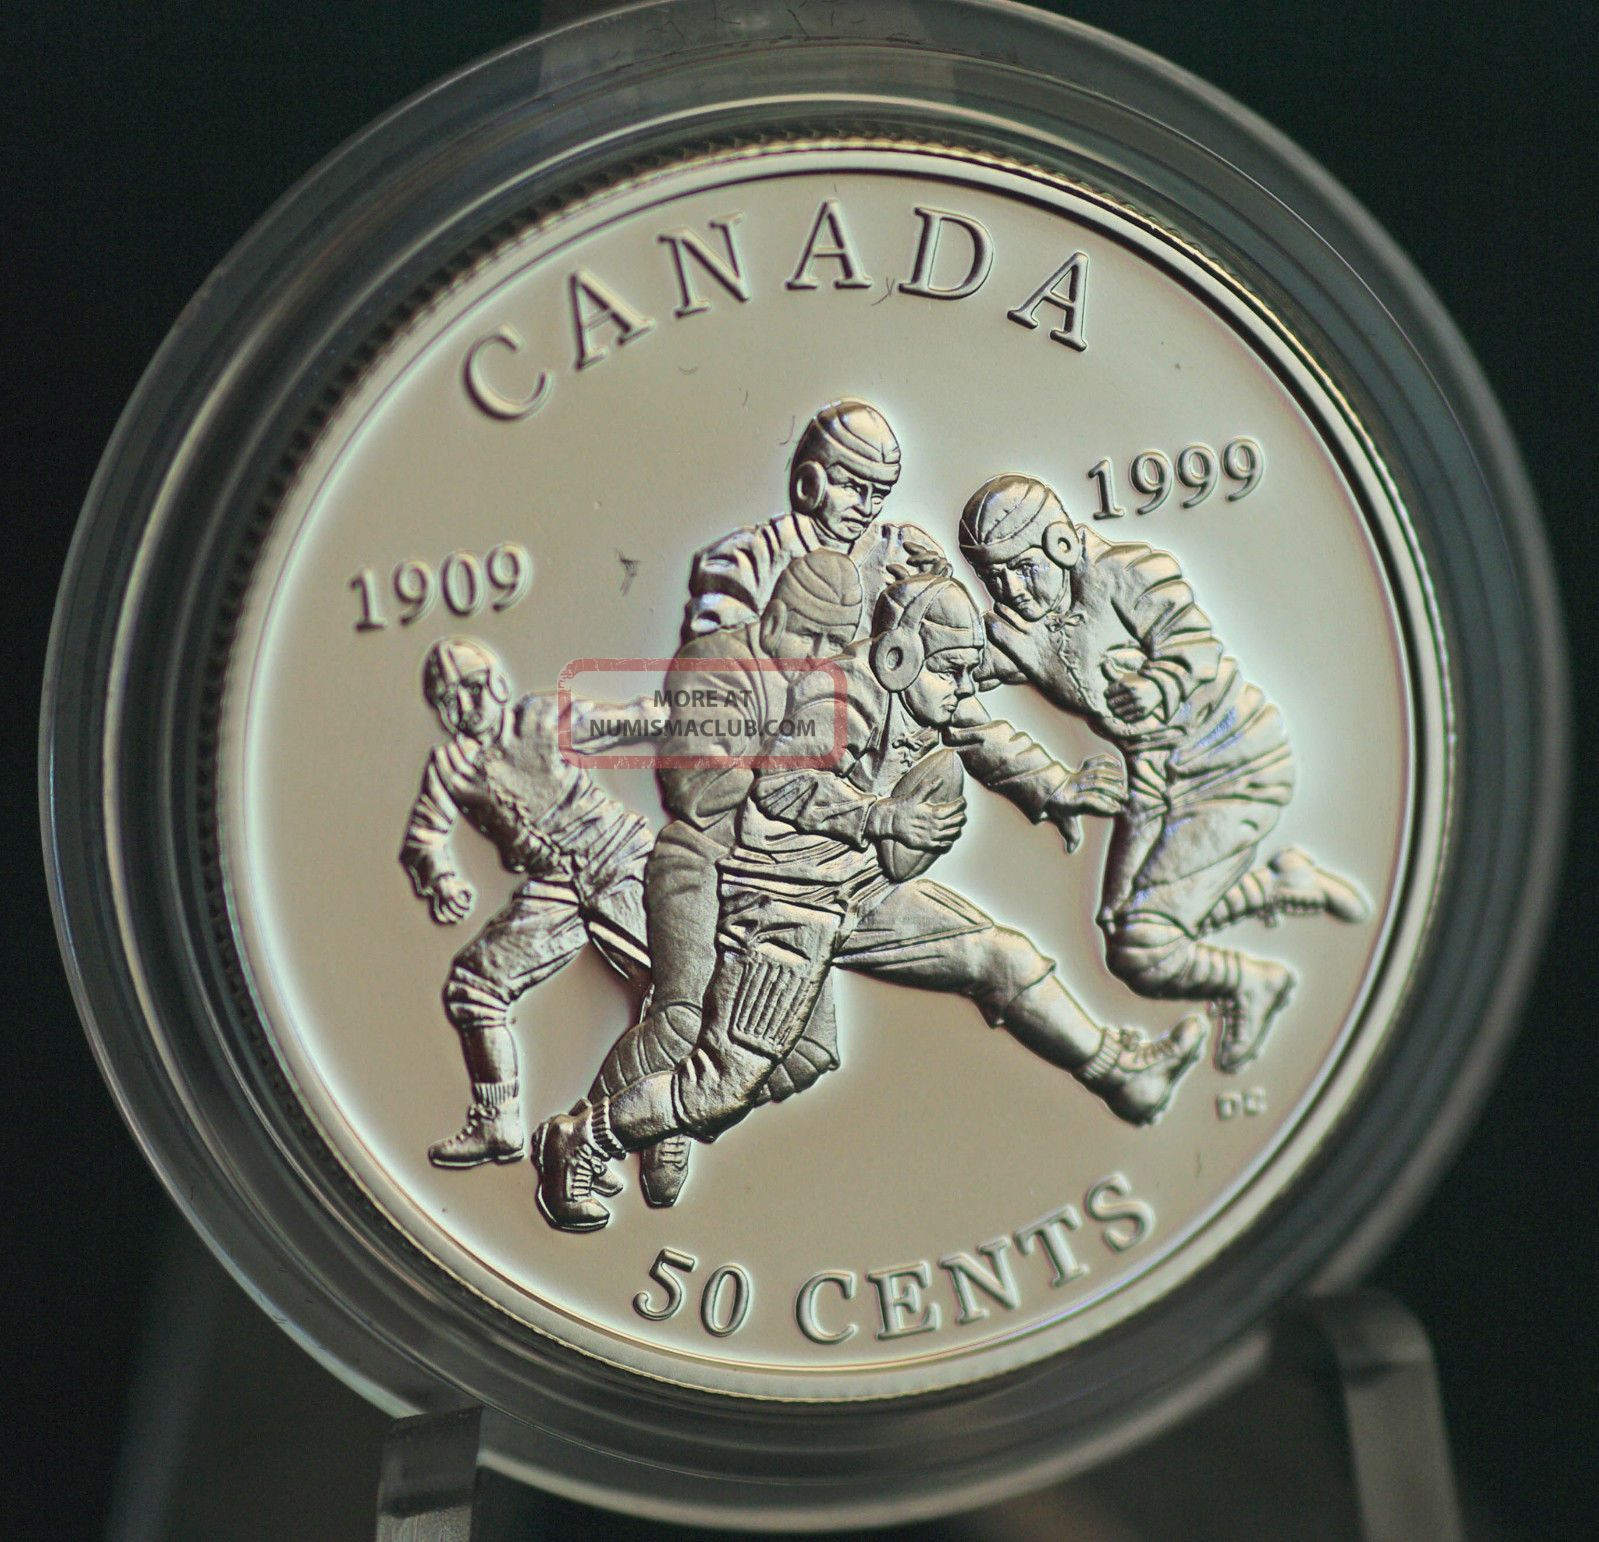 1999 Canada Football - Grey Cup Proof 50 Cent Coin In Metal Case Coins: Canada photo